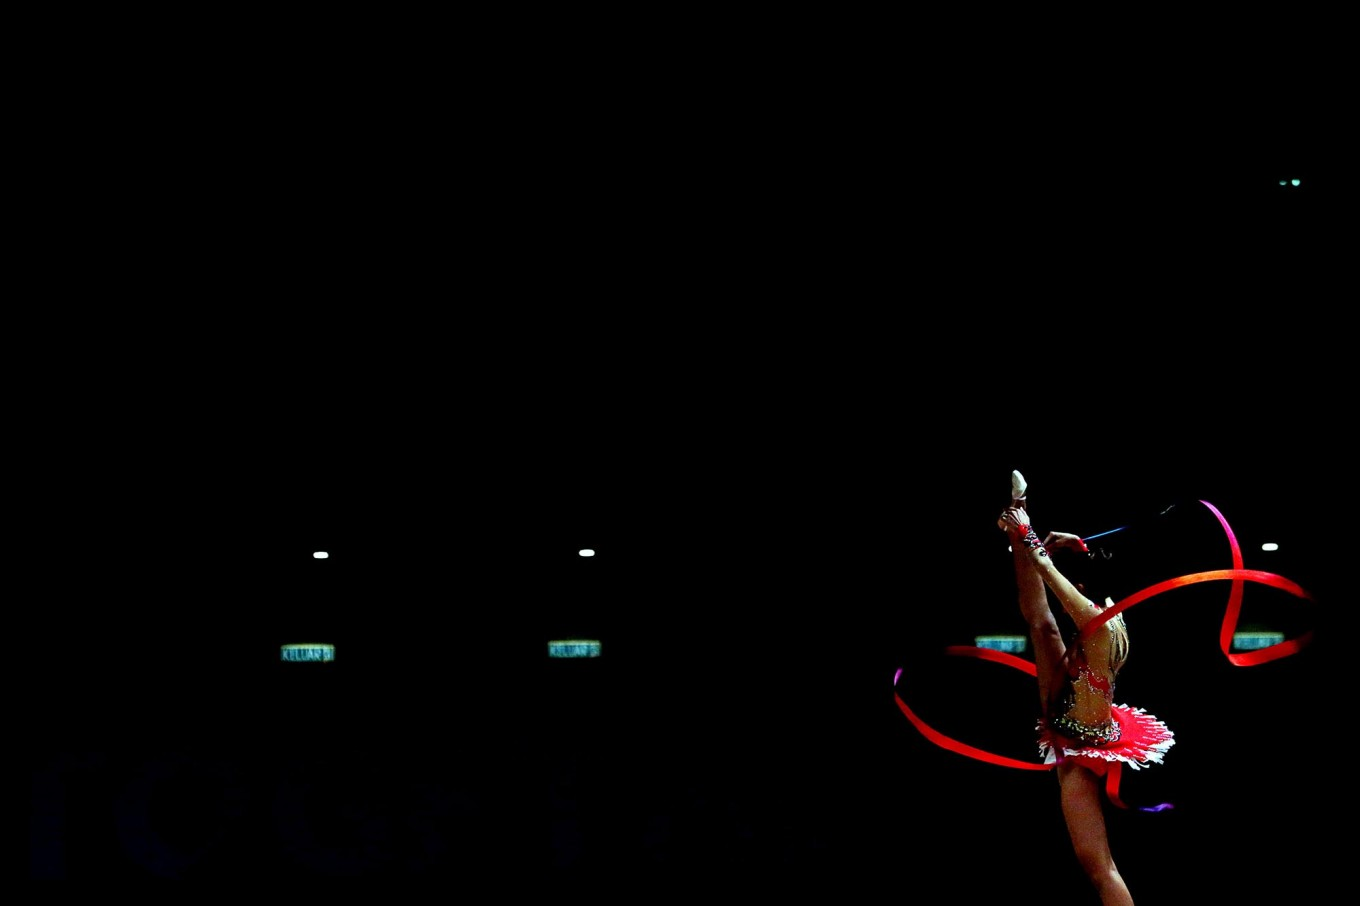 Strike a pose: Gymnast Nabila Evandestiera performs during the 29th SEA Games rhythmic gymnastics women's all-around finals. Indonesia's gymnastic team had won one gold medal, two silvers and six bronze medals as of Monday. JP/Seto Wardhana